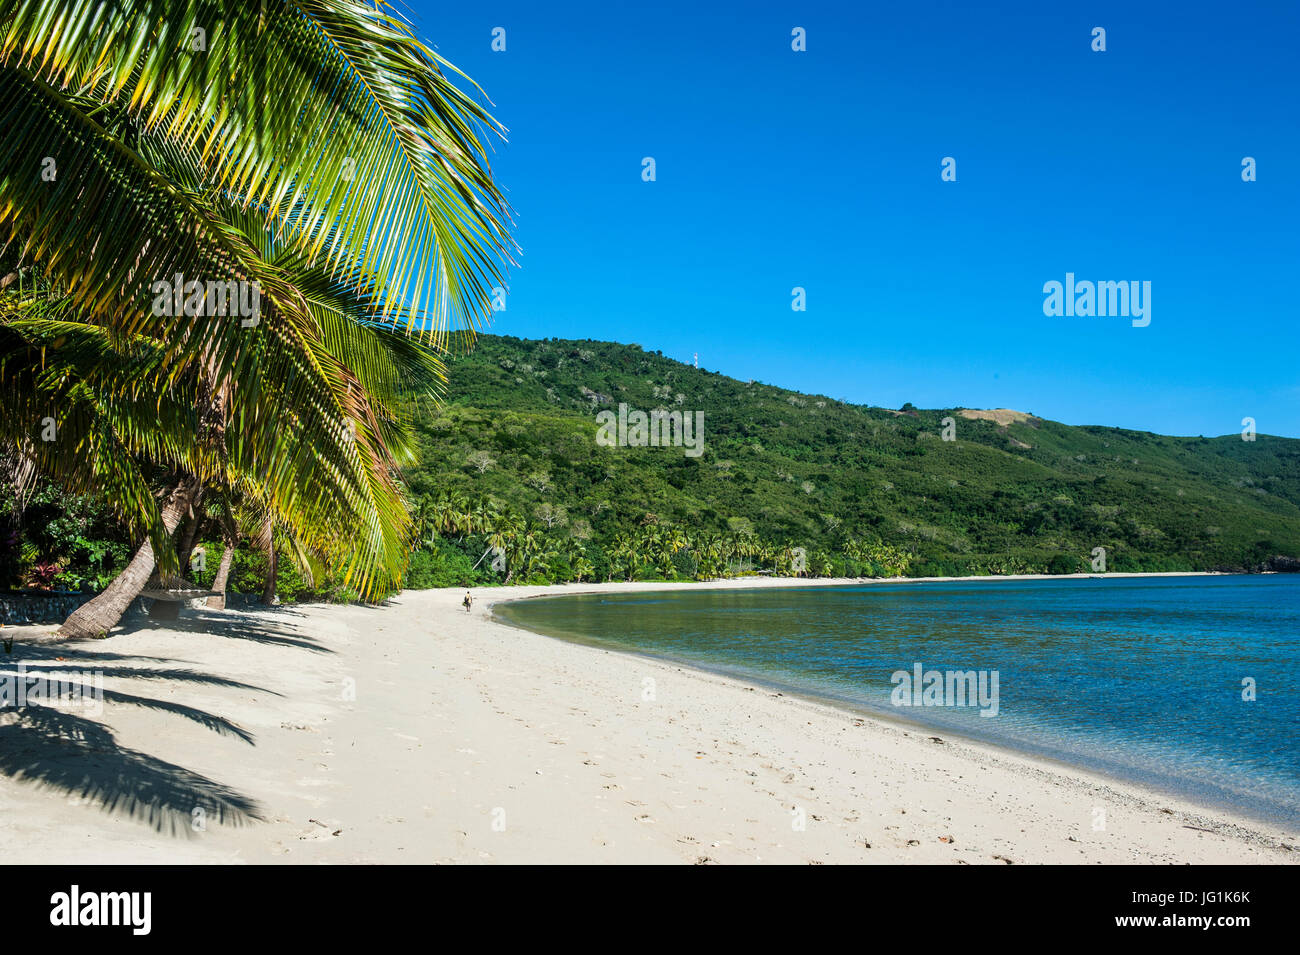 White sandy beach on  Korovou Eco-Tour Resort, Naviti, Yasawas, Fiji, South Pacific - Stock Image